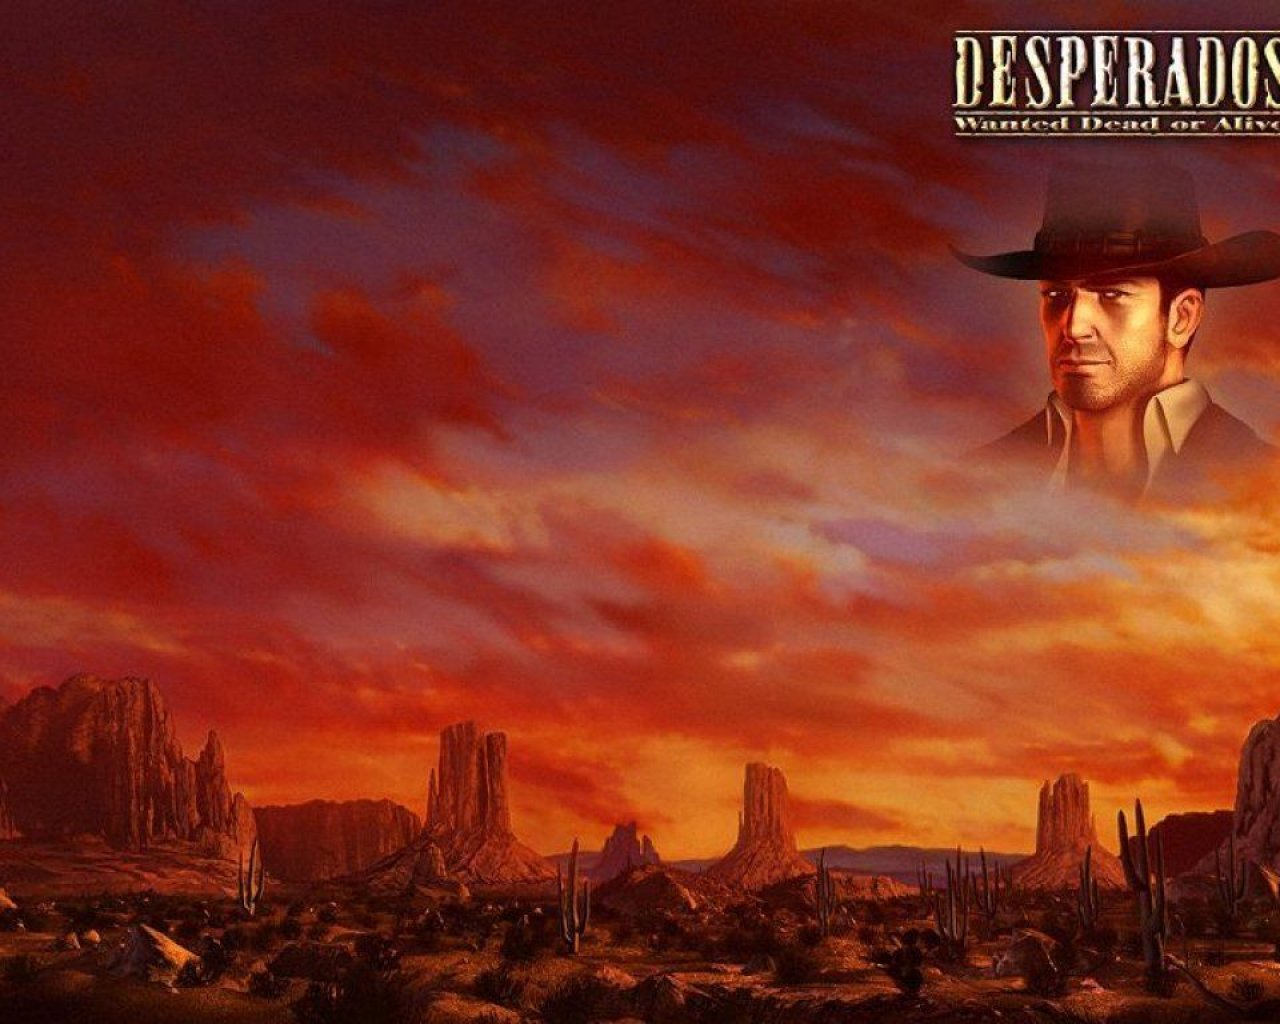 Spaghetti western samples, wild west soundtrack loops, western.